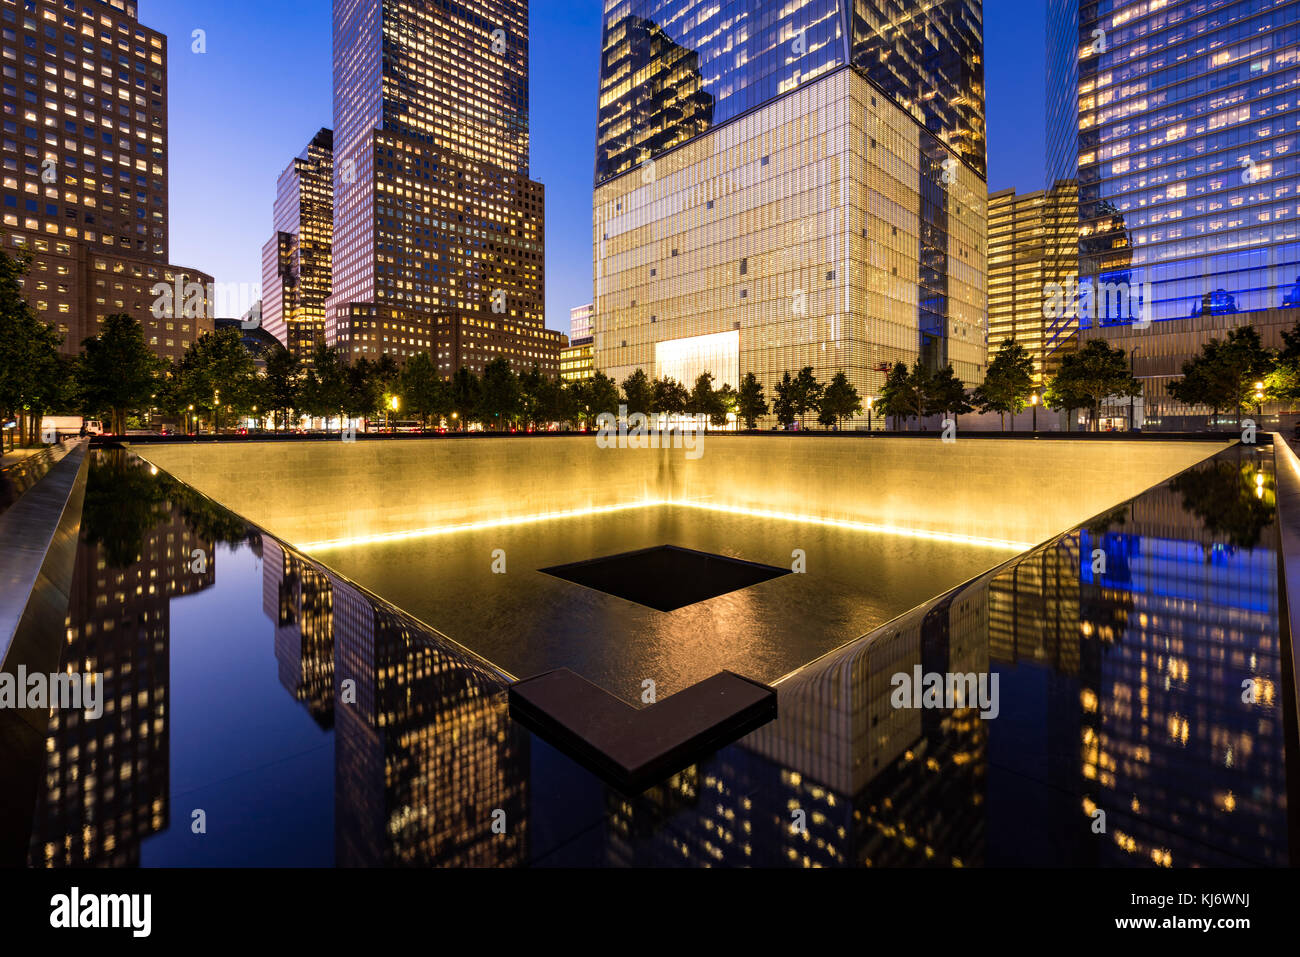 The North Reflecting Pool illuminated at twilight with view of One World Trade Center. Lower Manhattan, 9/11 Memorial - Stock Image